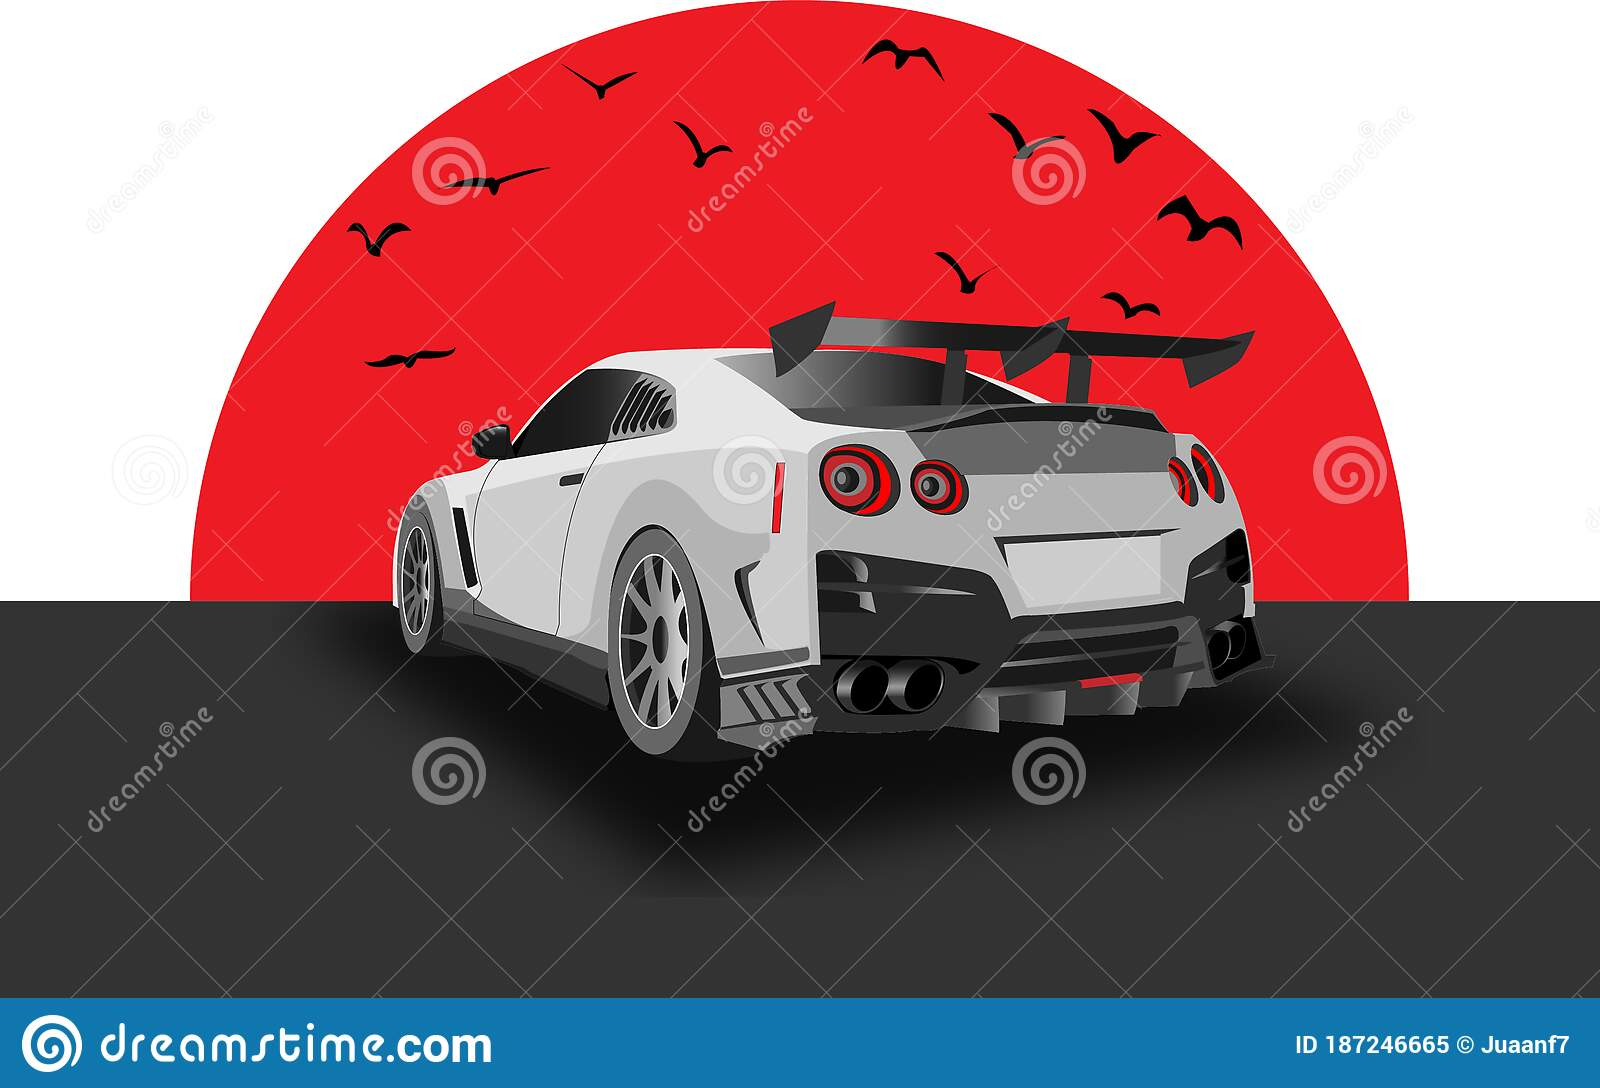 The wallpaper trend is going strong. Car Wallpaper Stock Illustrations 22 333 Car Wallpaper Stock Illustrations Vectors Clipart Dreamstime